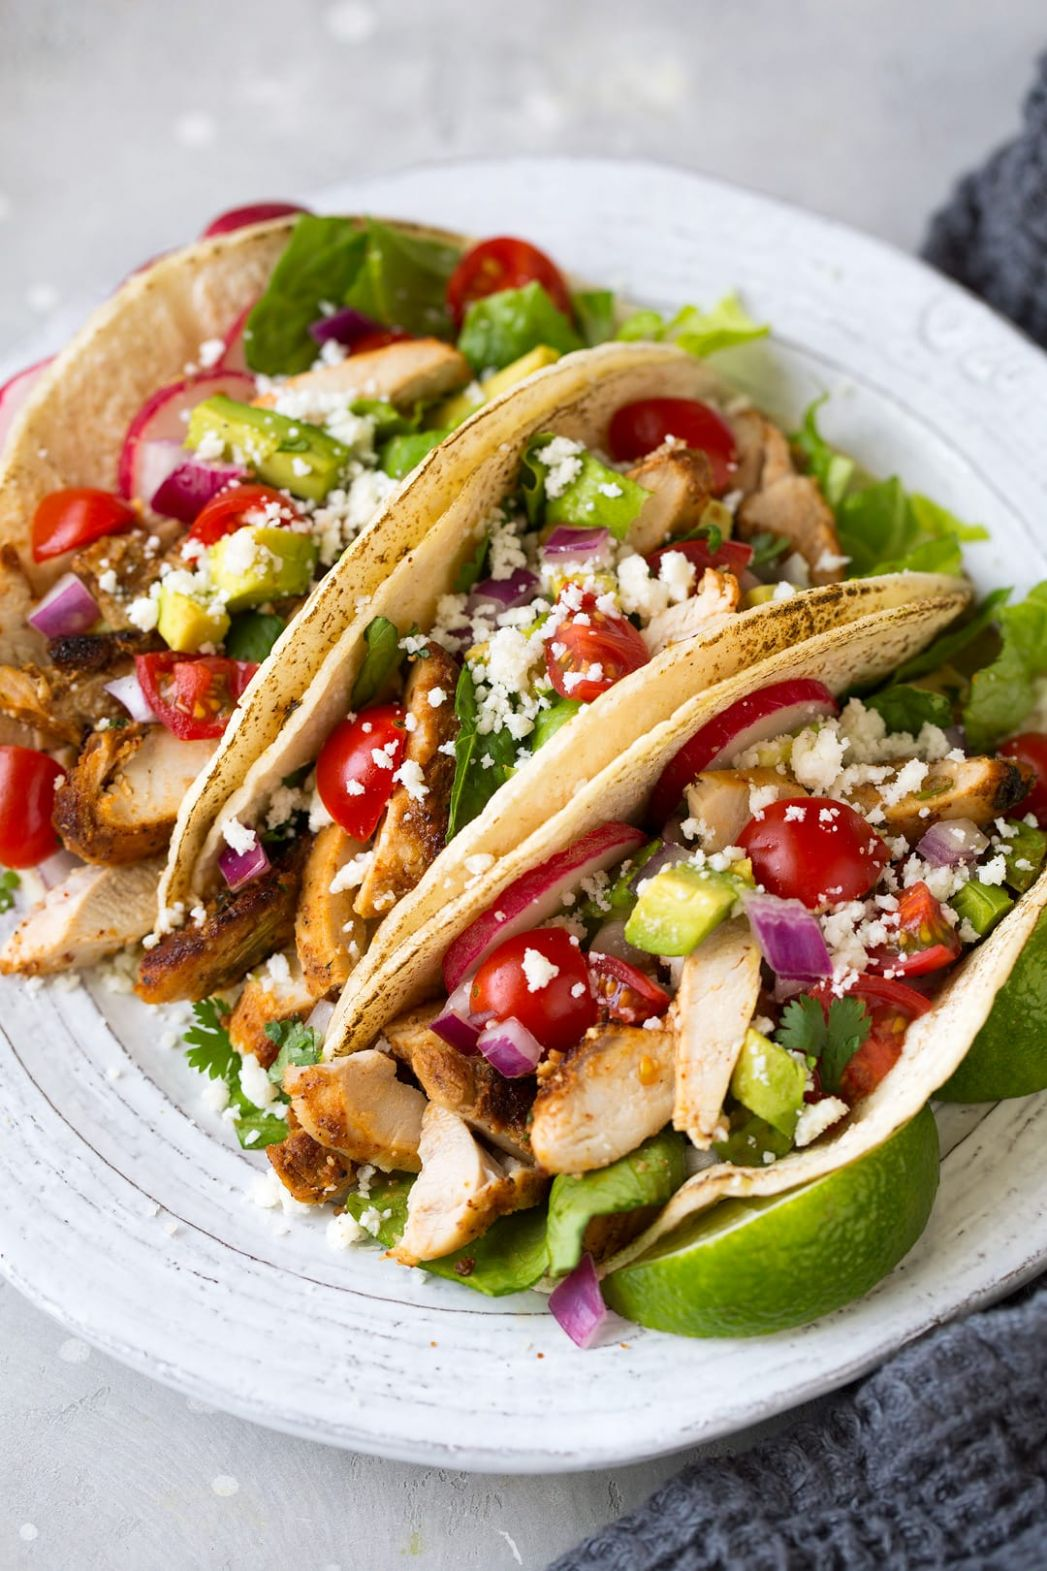 Oven Roasted Chicken Tacos - Recipes Chicken Tacos